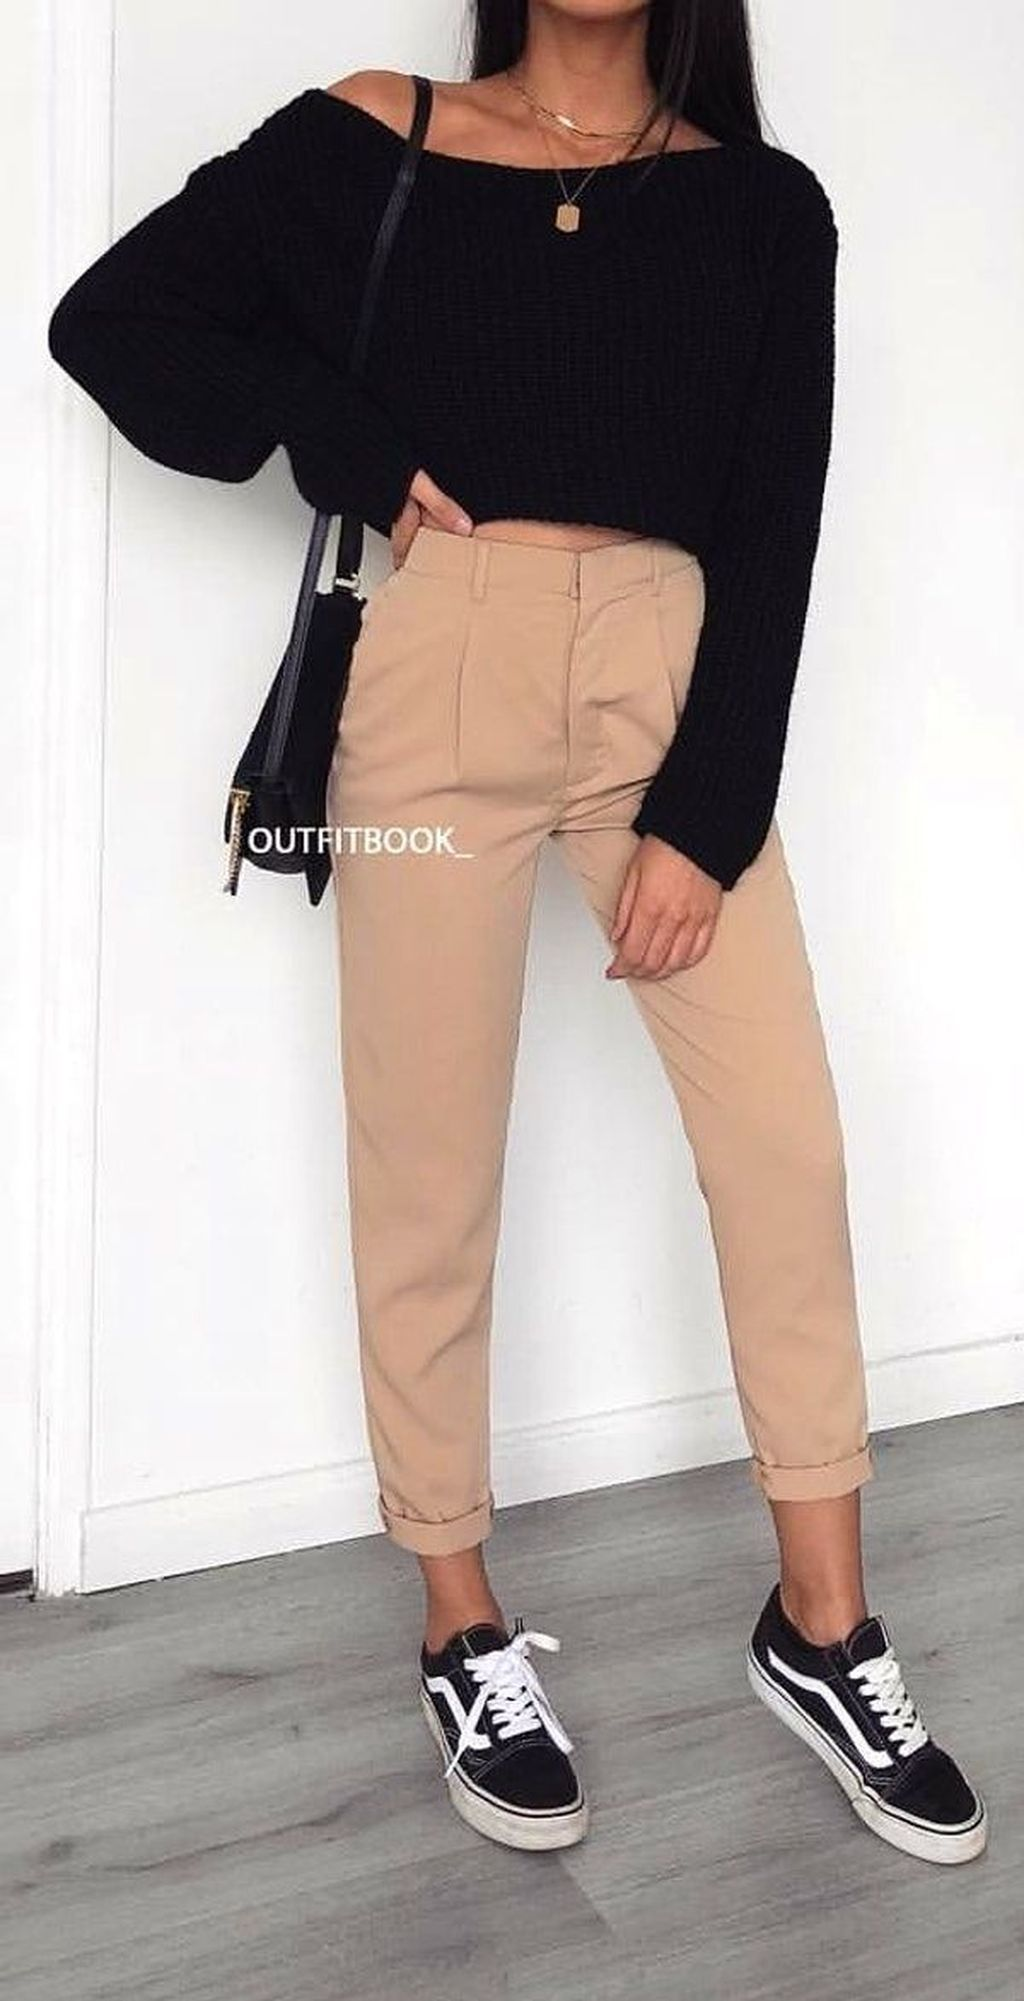 45 Outfit Ideas for Daily is part of Fashion forward outfits - It is very essential to refurbish your wardrobe often  Simple mix n match style can be adopted by using old […]